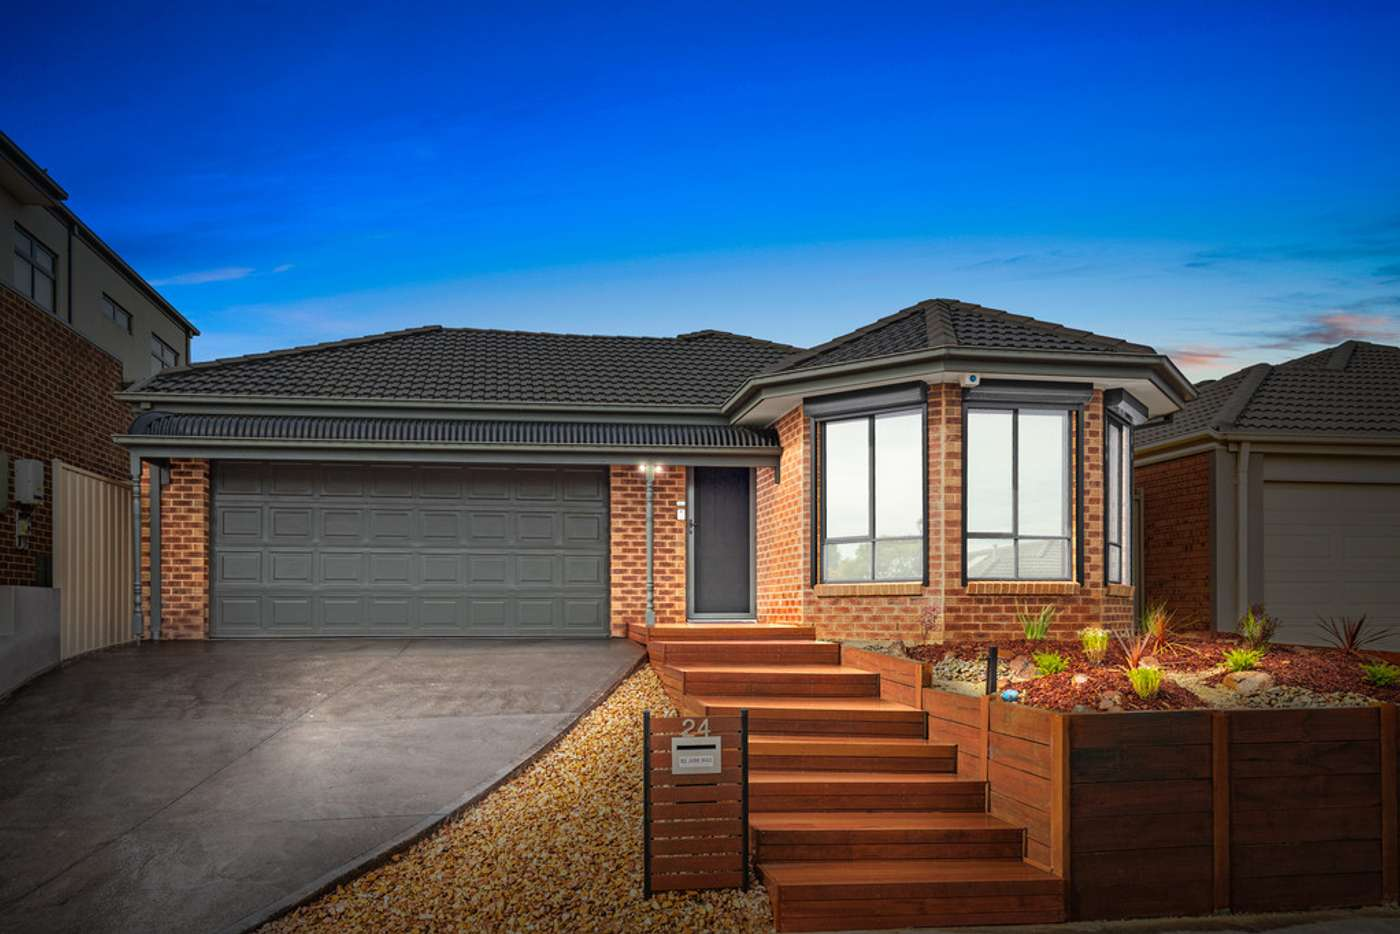 Main view of Homely house listing, 24 Hascombe Drive, Caroline Springs VIC 3023